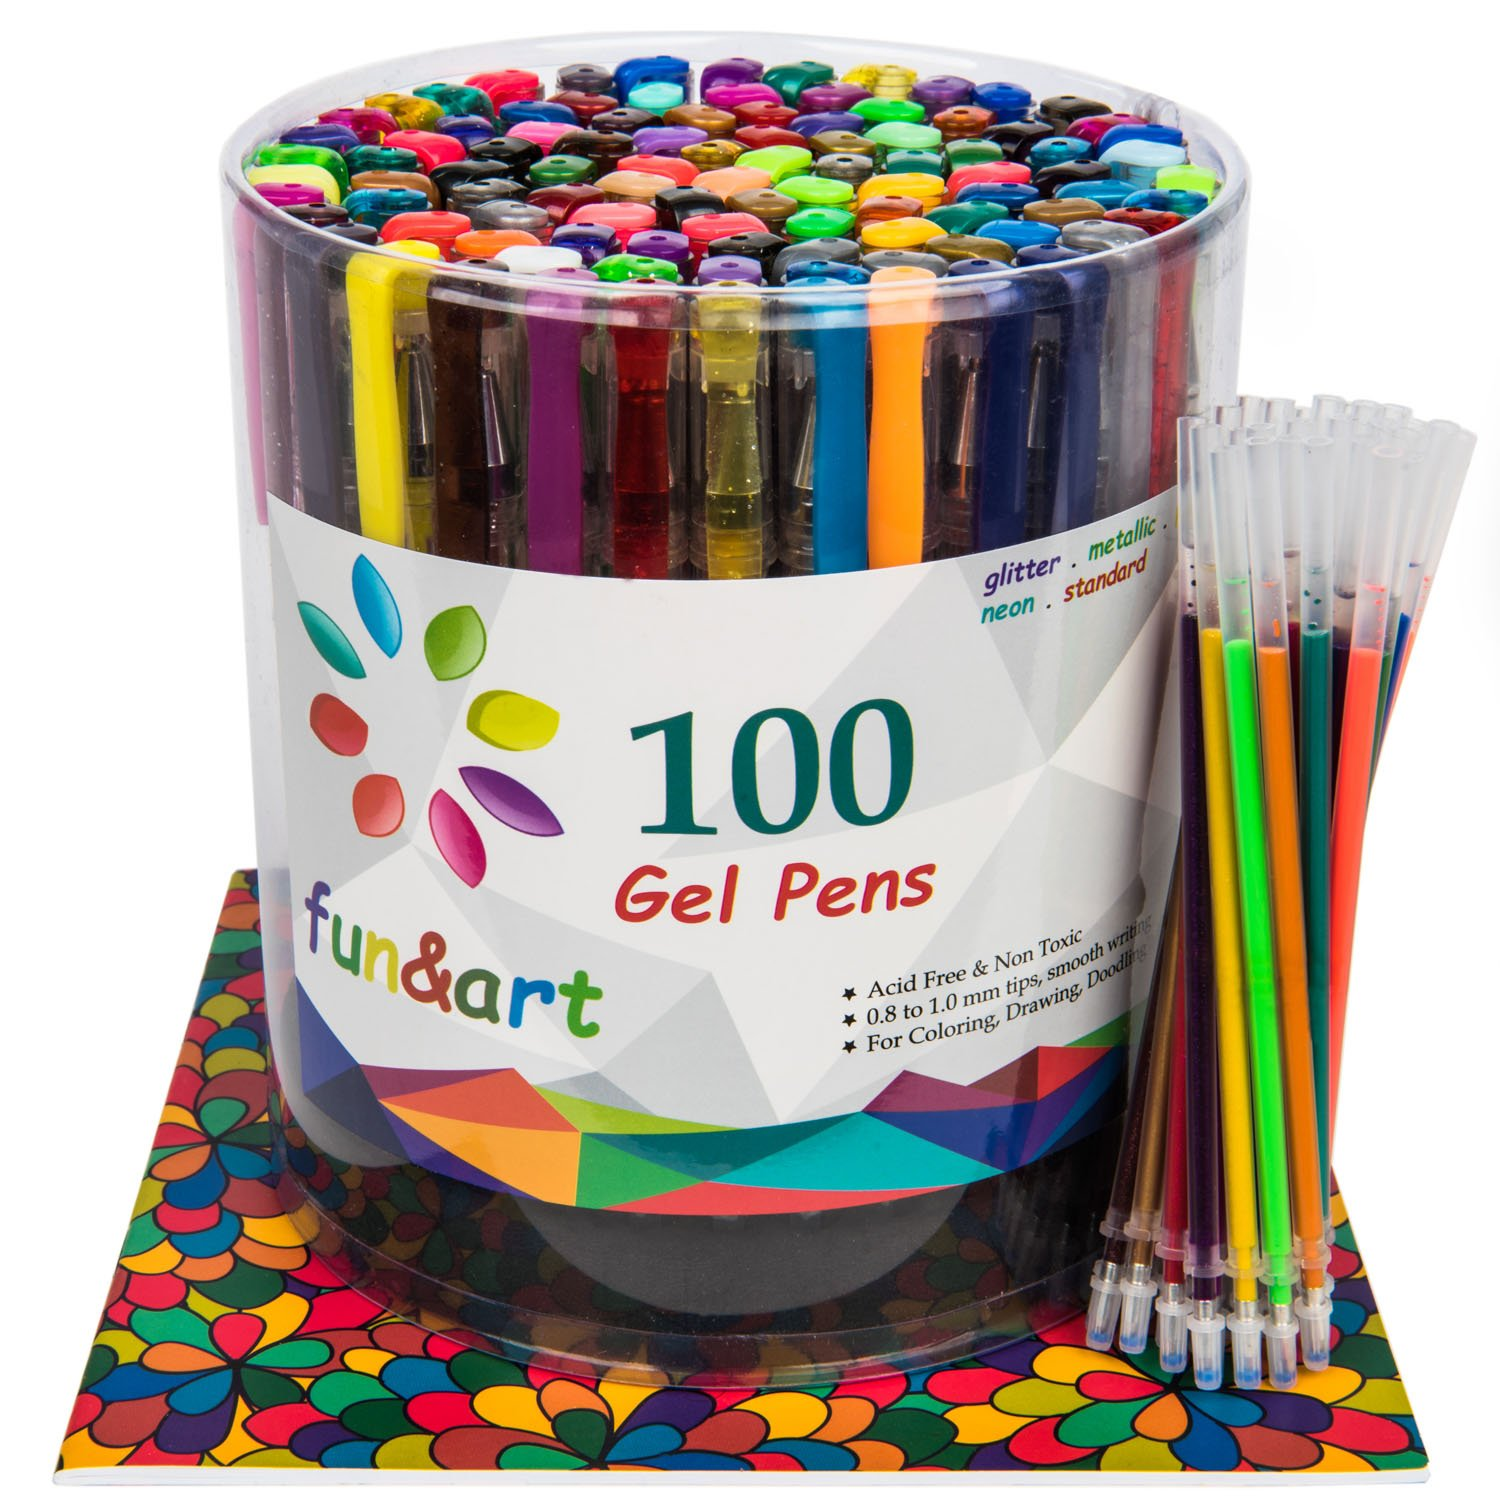 fun&art 130 Gel Pen Set Plus Free Bonus Adult Coloring Book, 100 Glitter & Gel Pens Plus 30 Extra Ink Refills with Case and Base Stand, Non Toxic Safe For Kids.